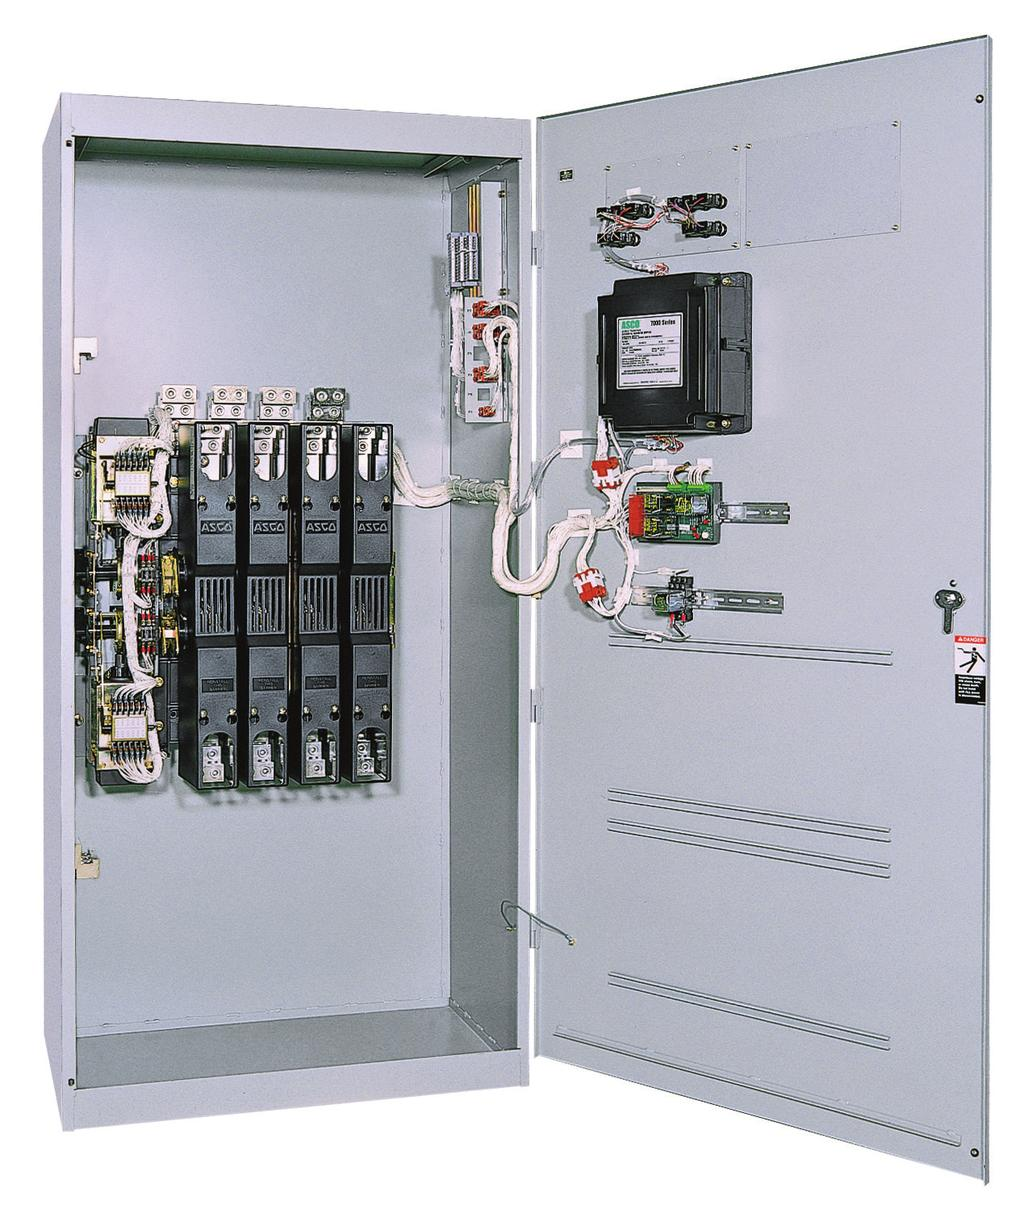 Asco 7000 Series Power Transfer Switch Pdf Limit Wiring Diagram Open Transition Switches Are Suitable For A Wide Range Of Applications Available From 30 To